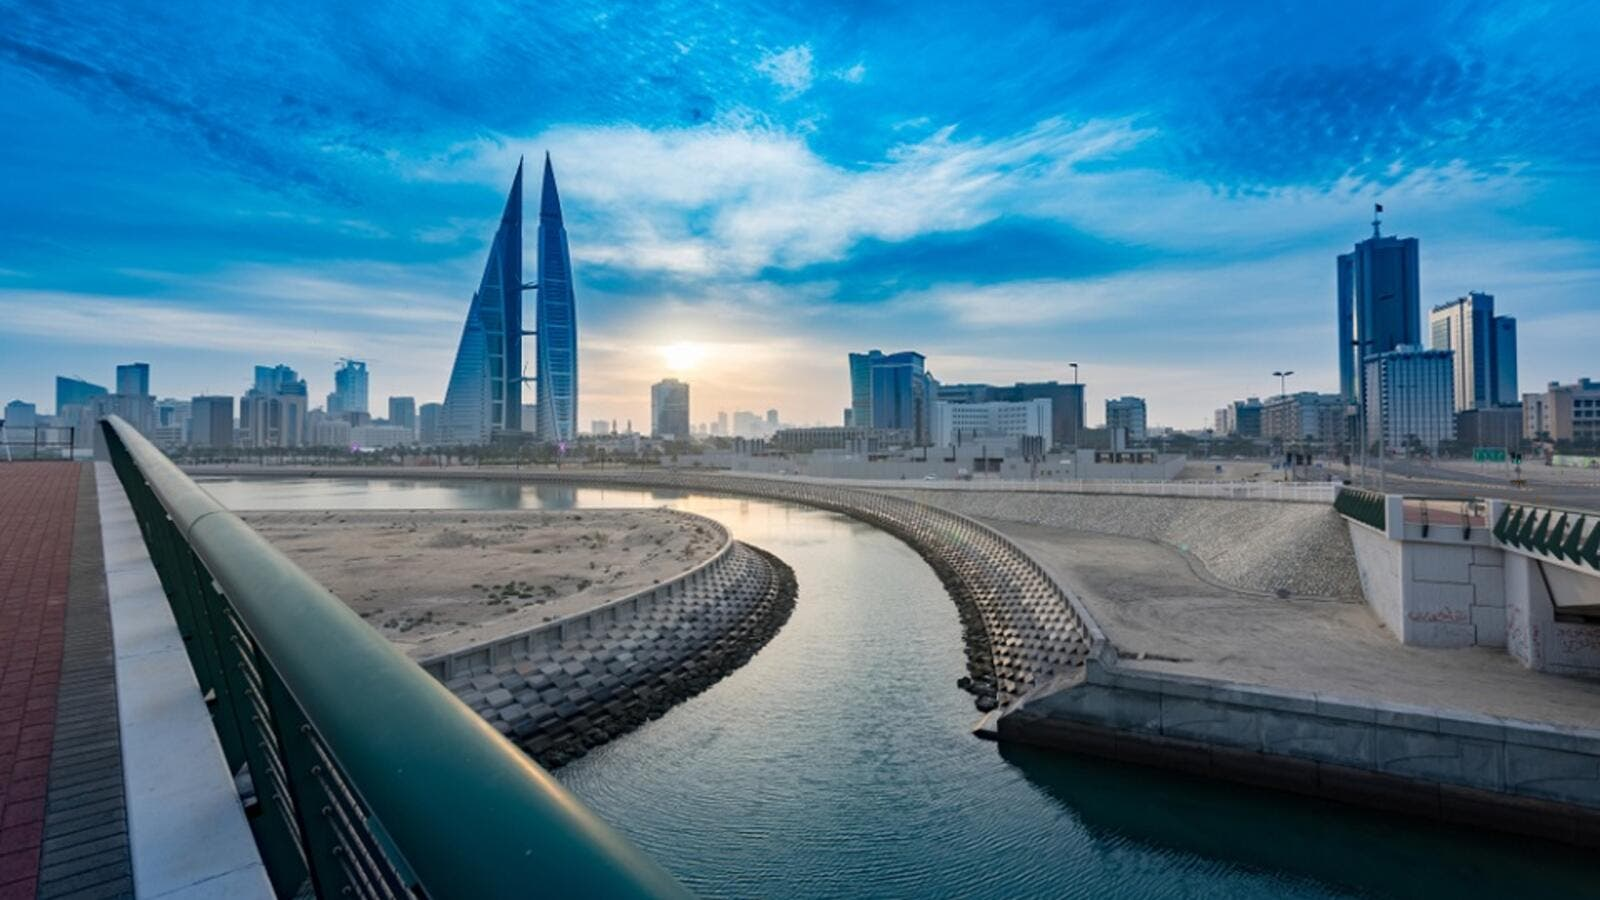 Despite Bahrain losing ground in terms of working abroad and family life, expats are still generally happy with both aspects of life abroad.